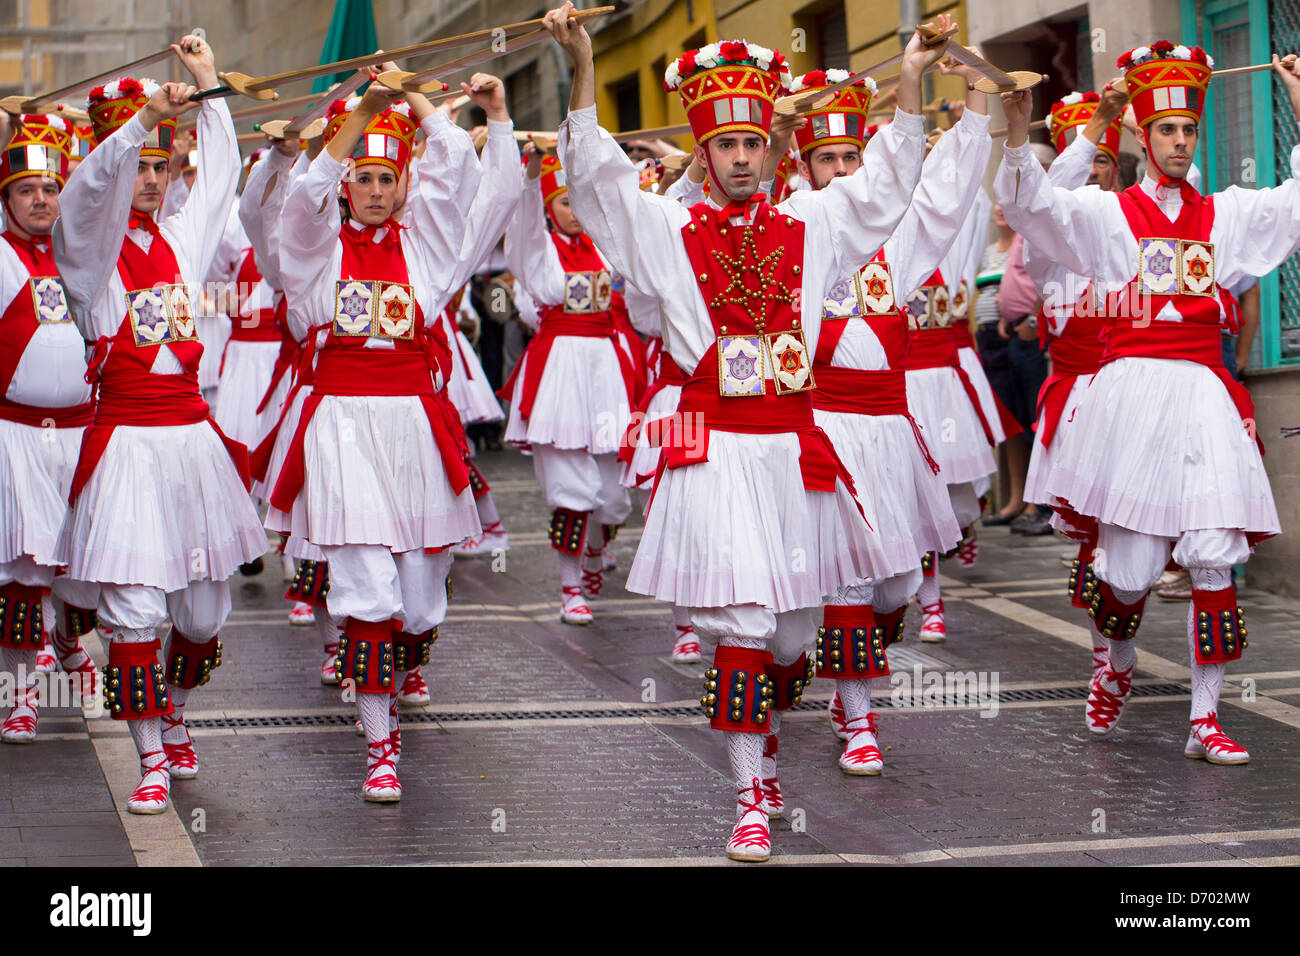 Dancers parading in procession through the streets during San Fermin Fiesta at Pamplona, Navarre, Northern Spain Stock Photo